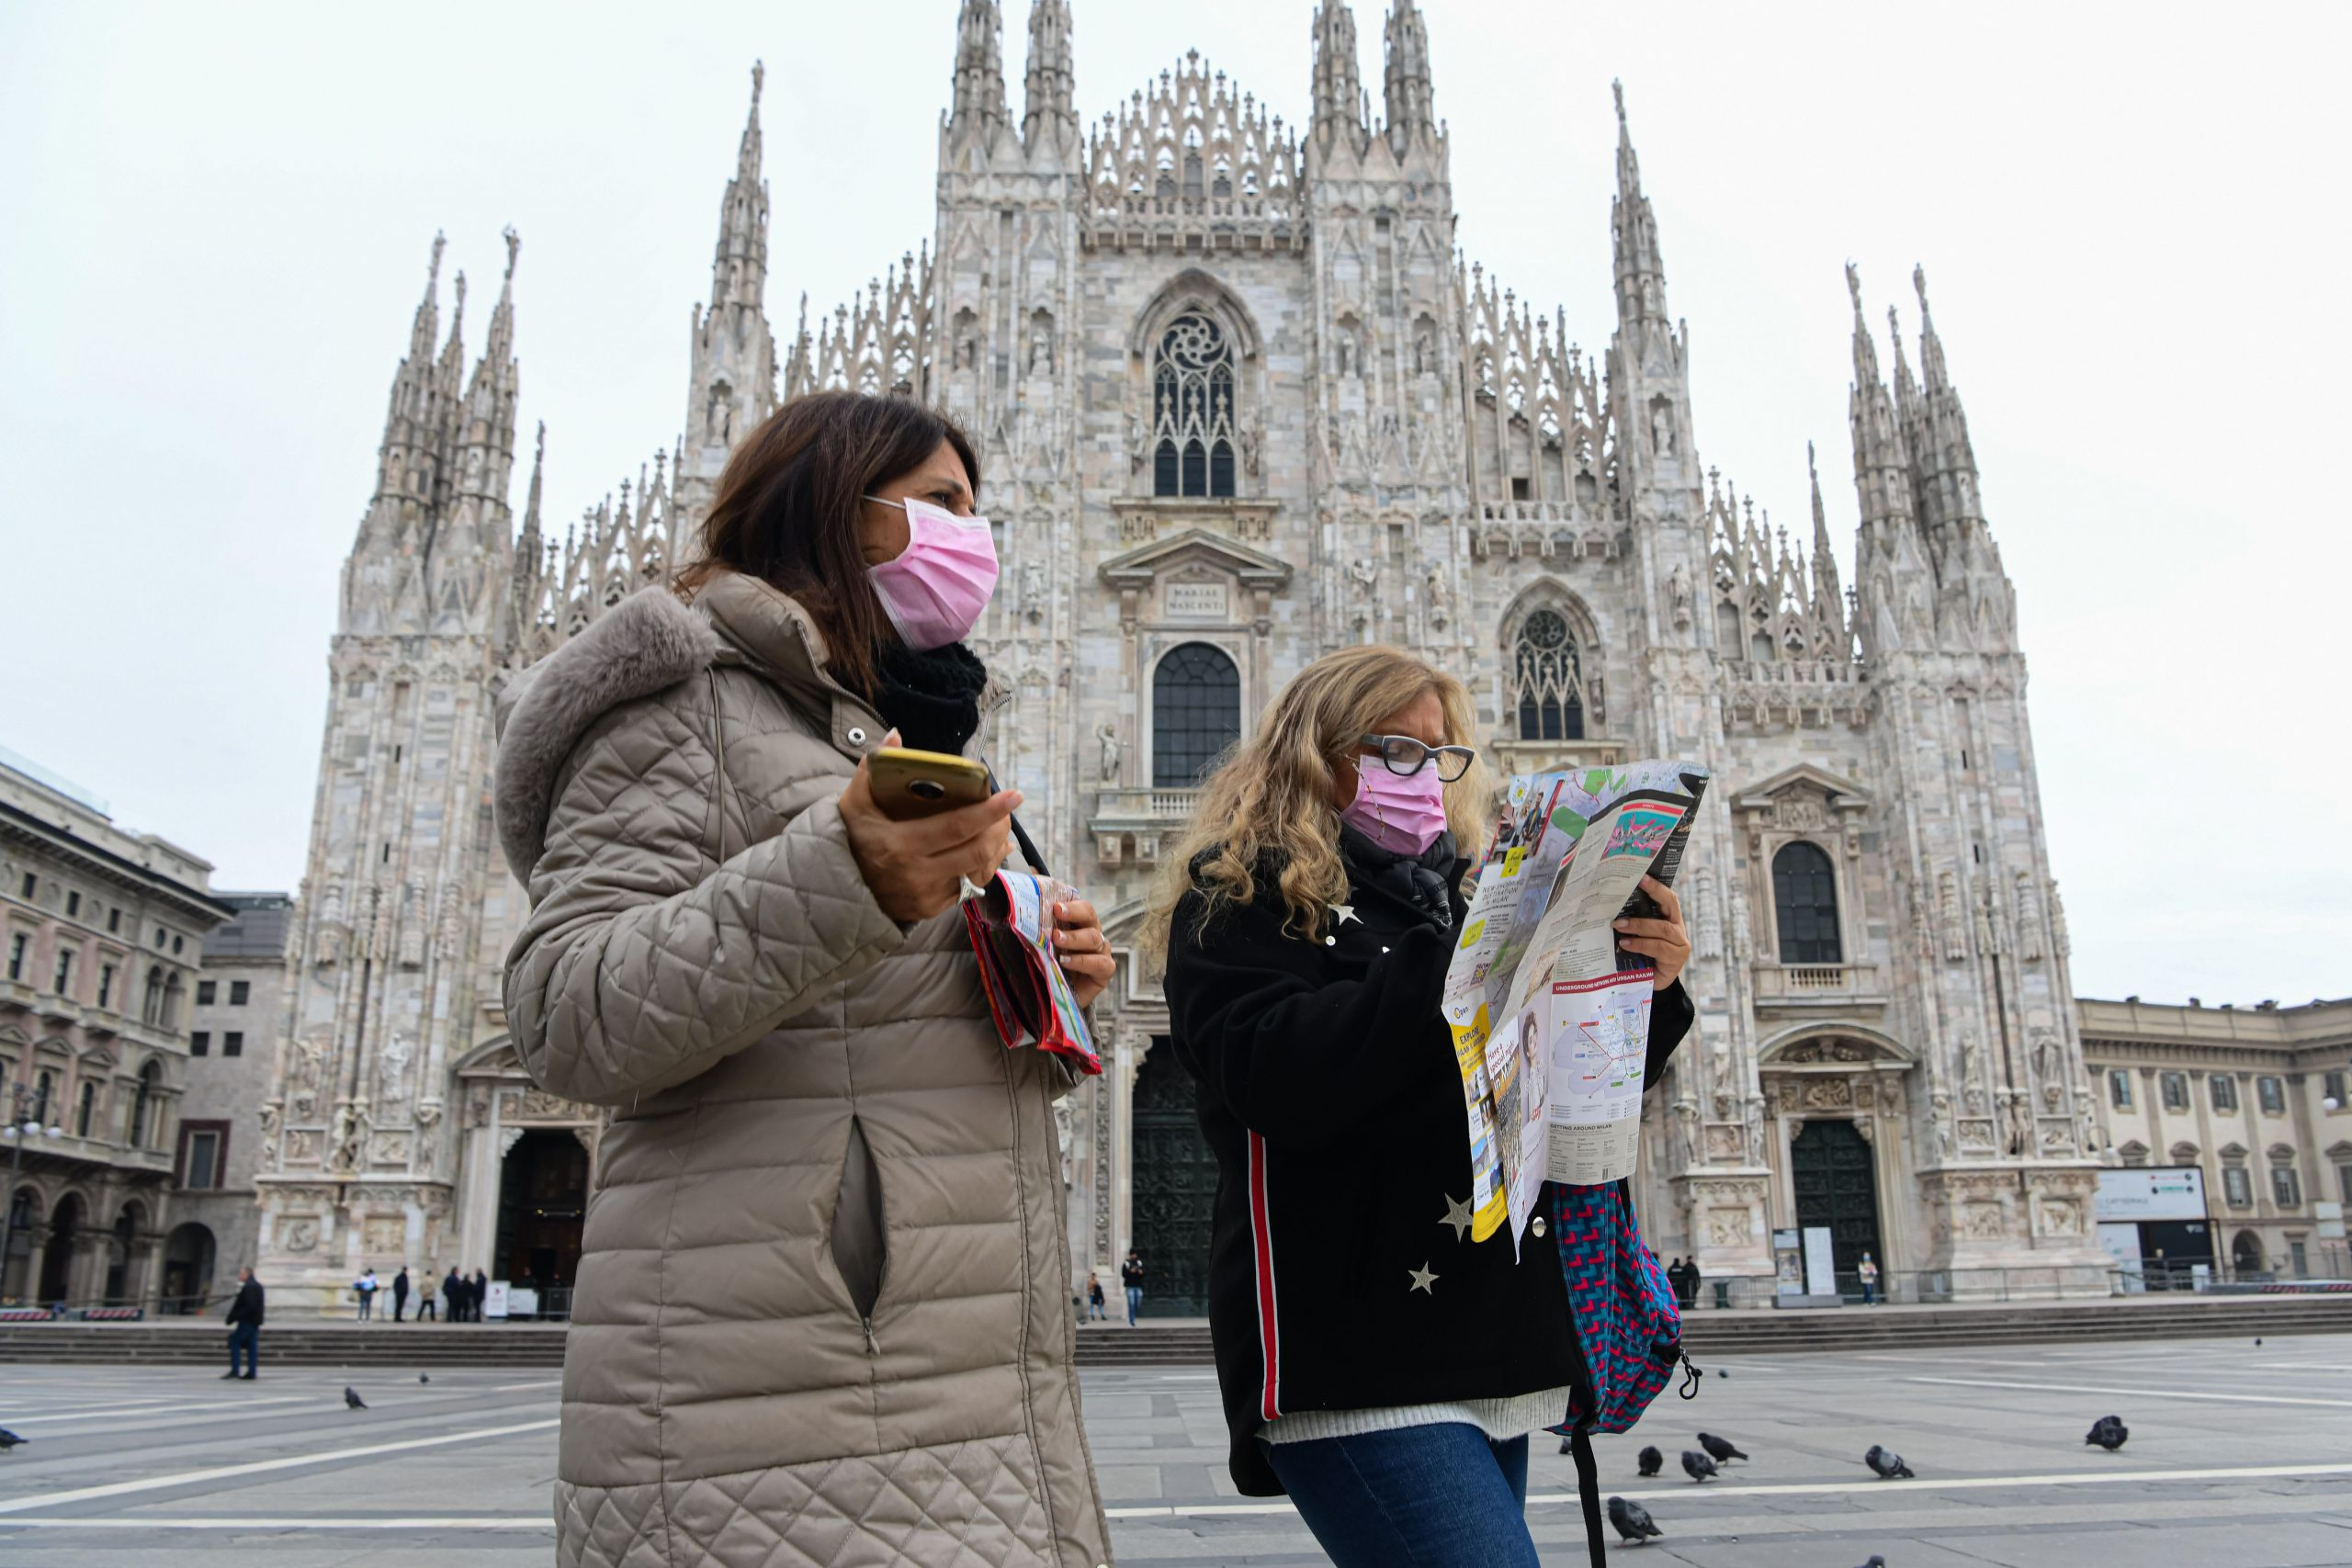 Italy plans to lock down Milan area, nation's financial hub, in effort to contain coronavirus